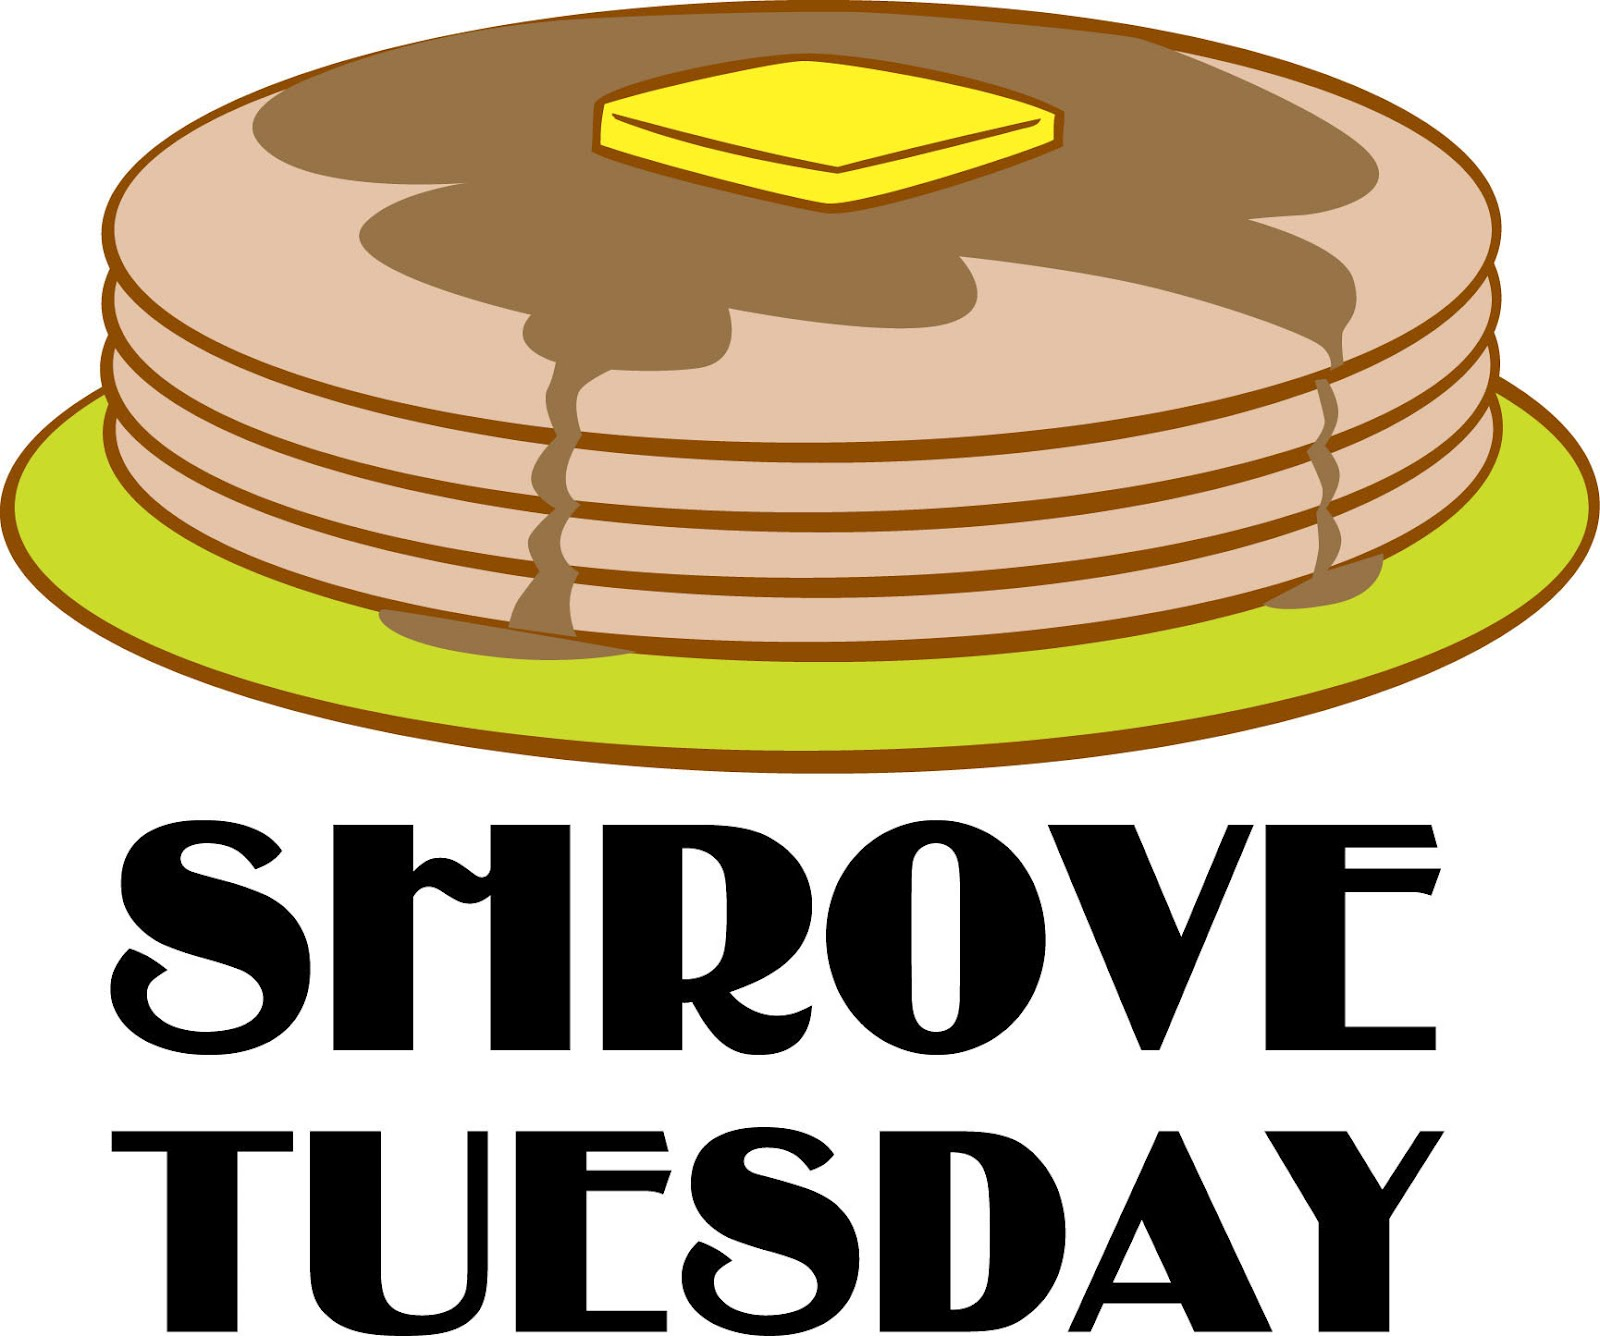 shrove tuesday - photo #12